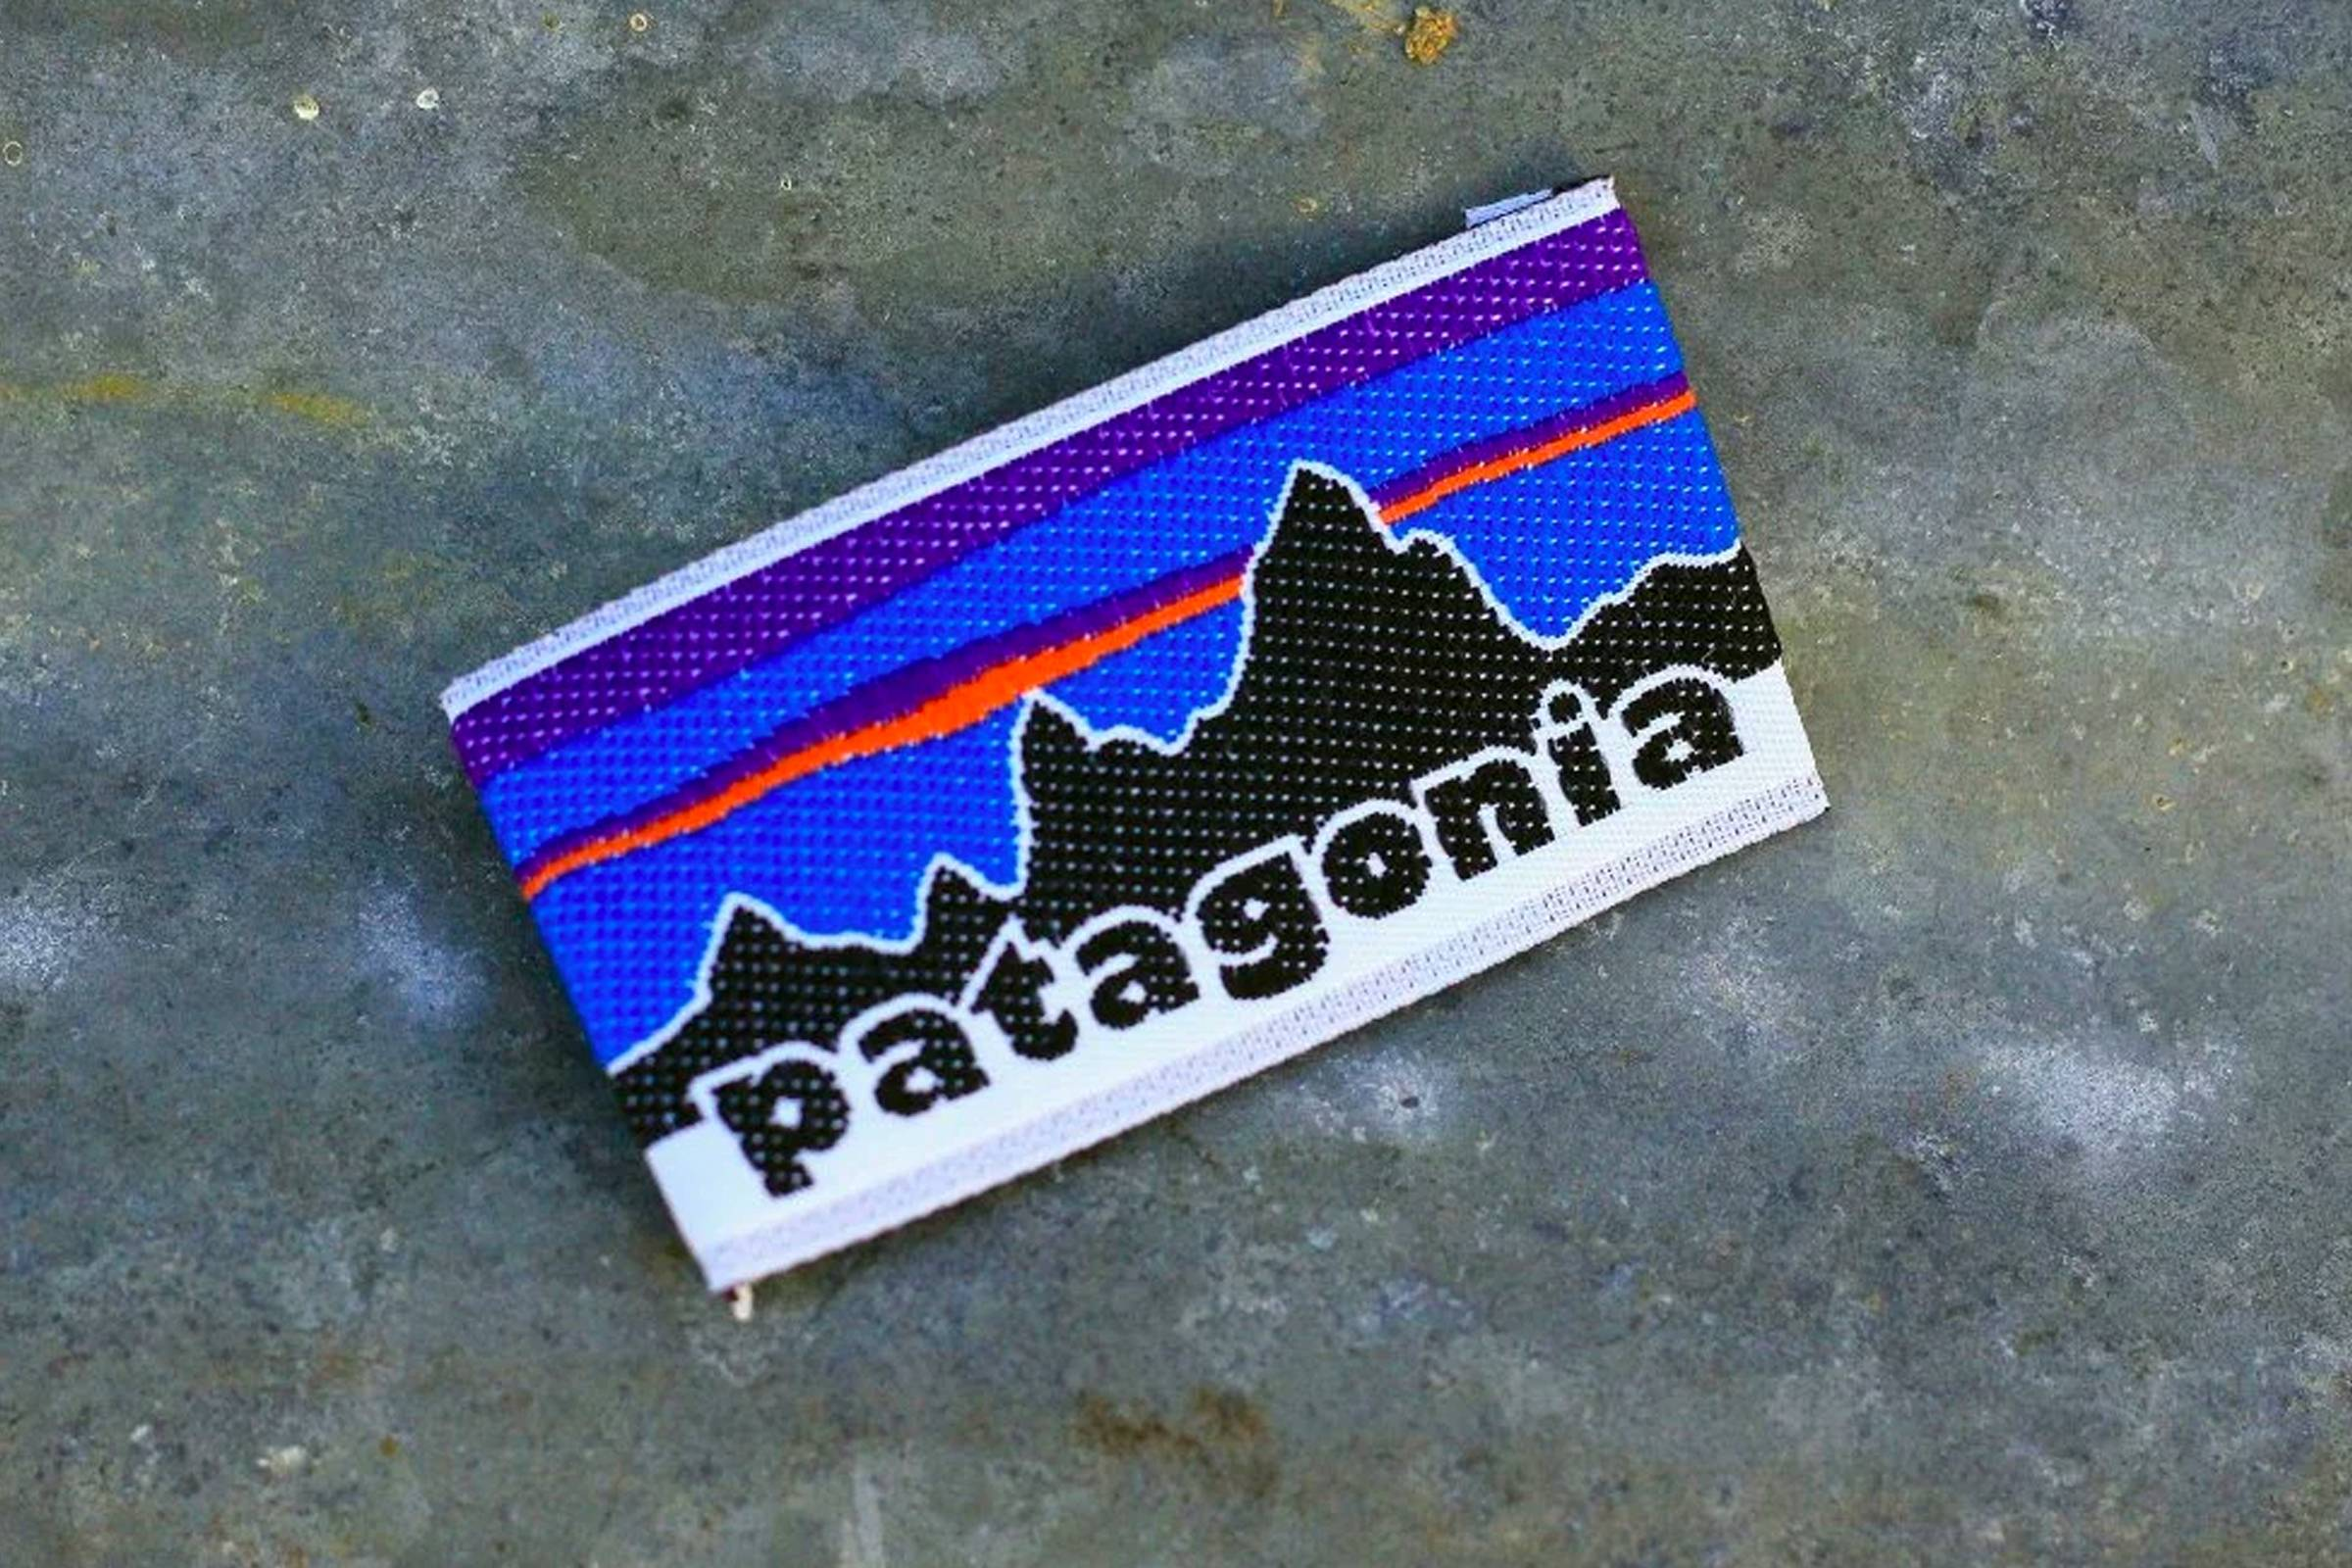 A tag featuring Patagonia's now-iconic Fitz Roy logo, first used in the Spring 1976 collection